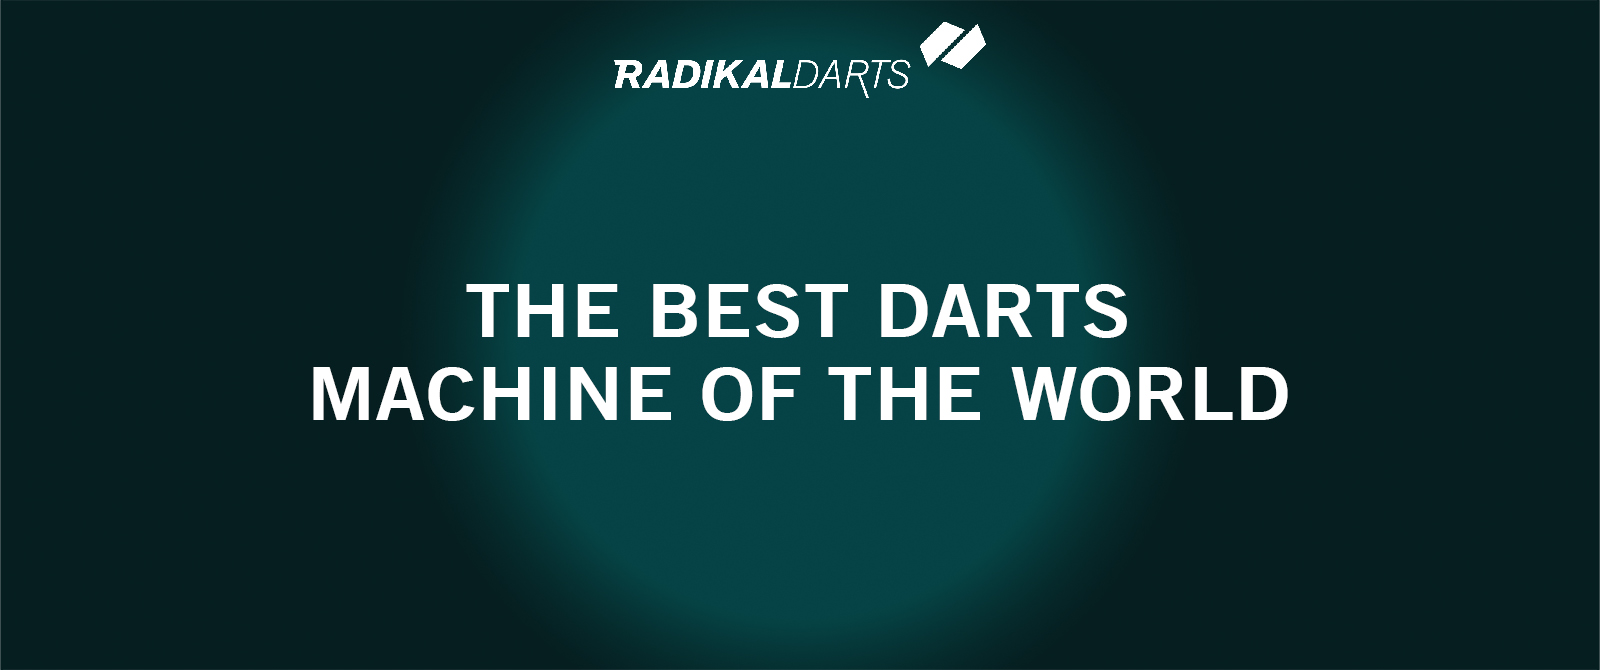 THE BEST DARTS MACHINE